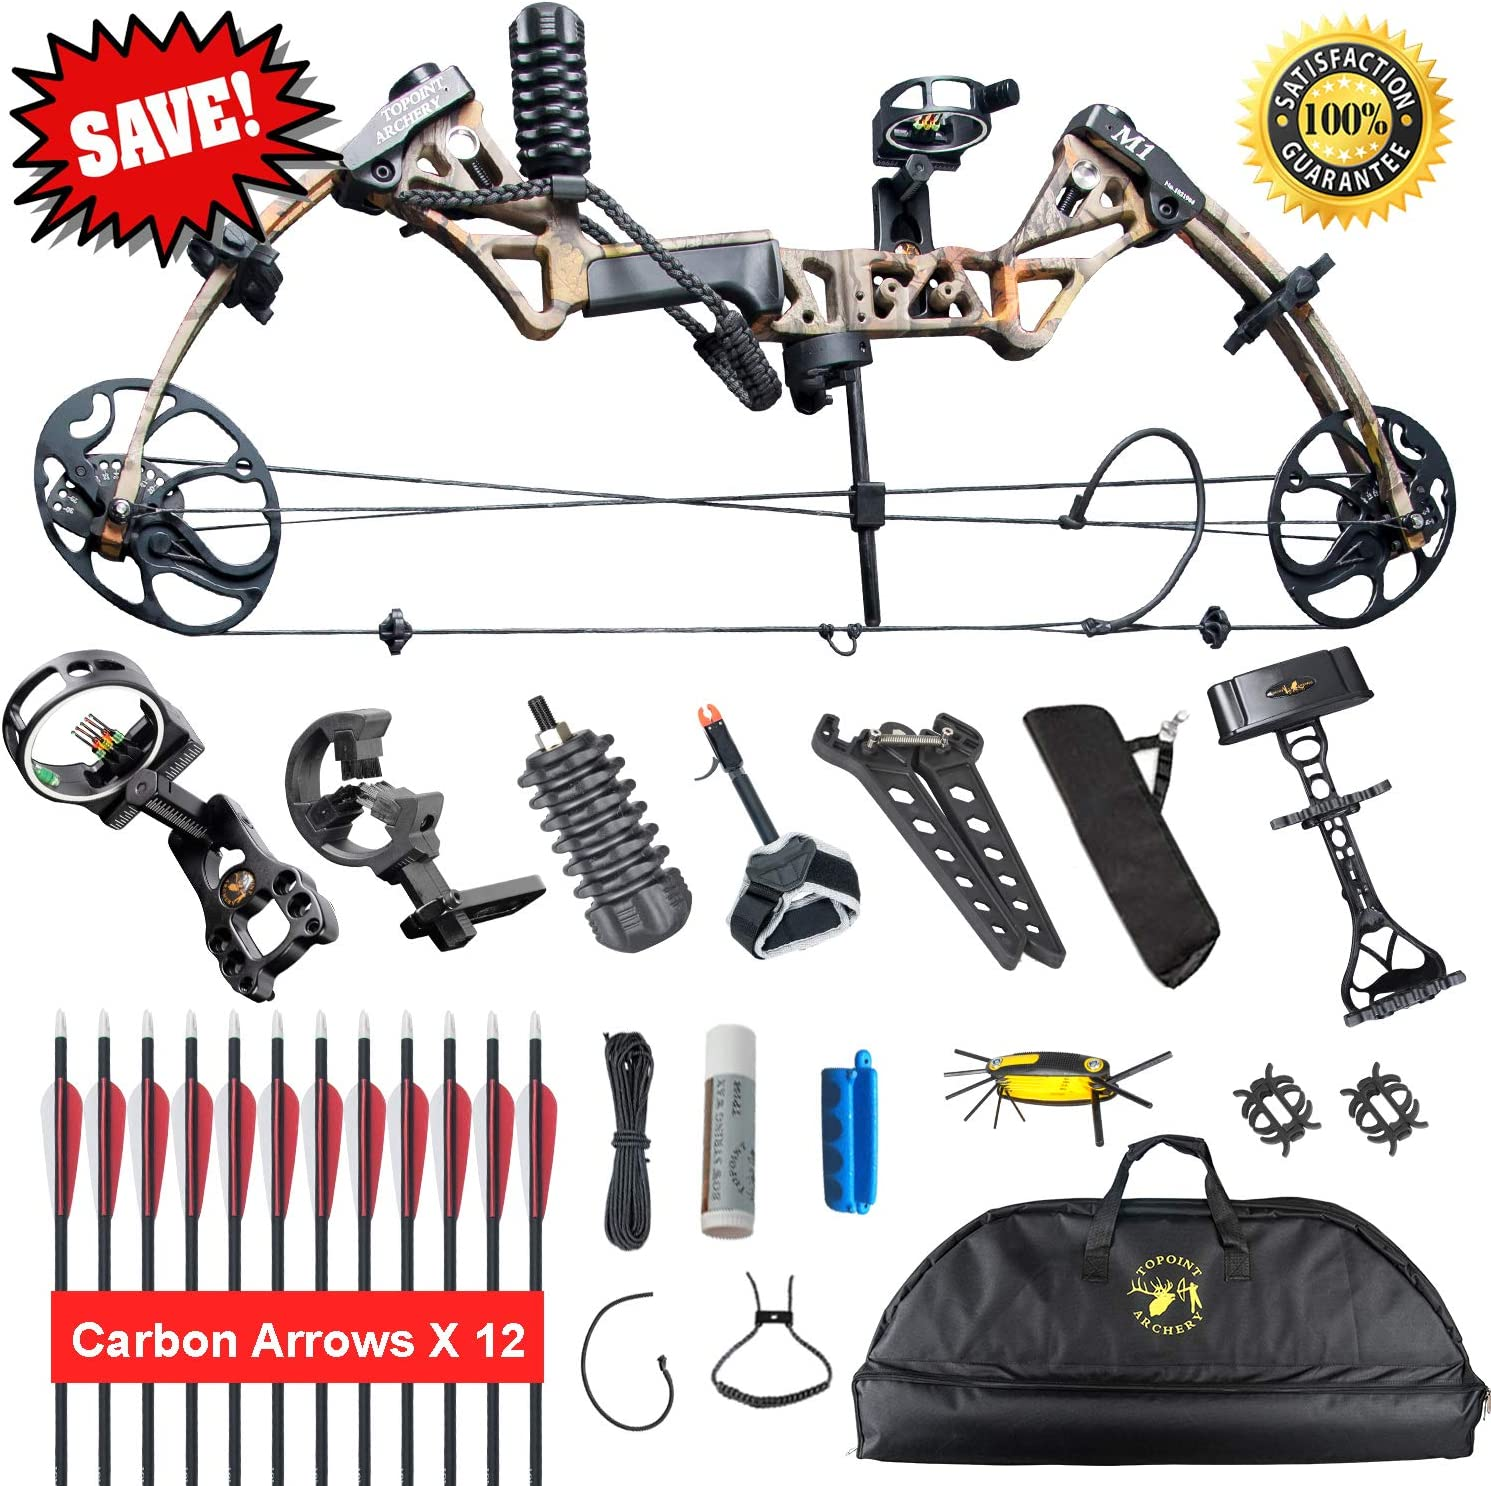 XGeek Compound Bow Compound Hunting Bow Kit Limbs Made in USA 19 -30 Draw Length,19-70Lbs Draw Weight Up to 320FPS 2 Years Warranty